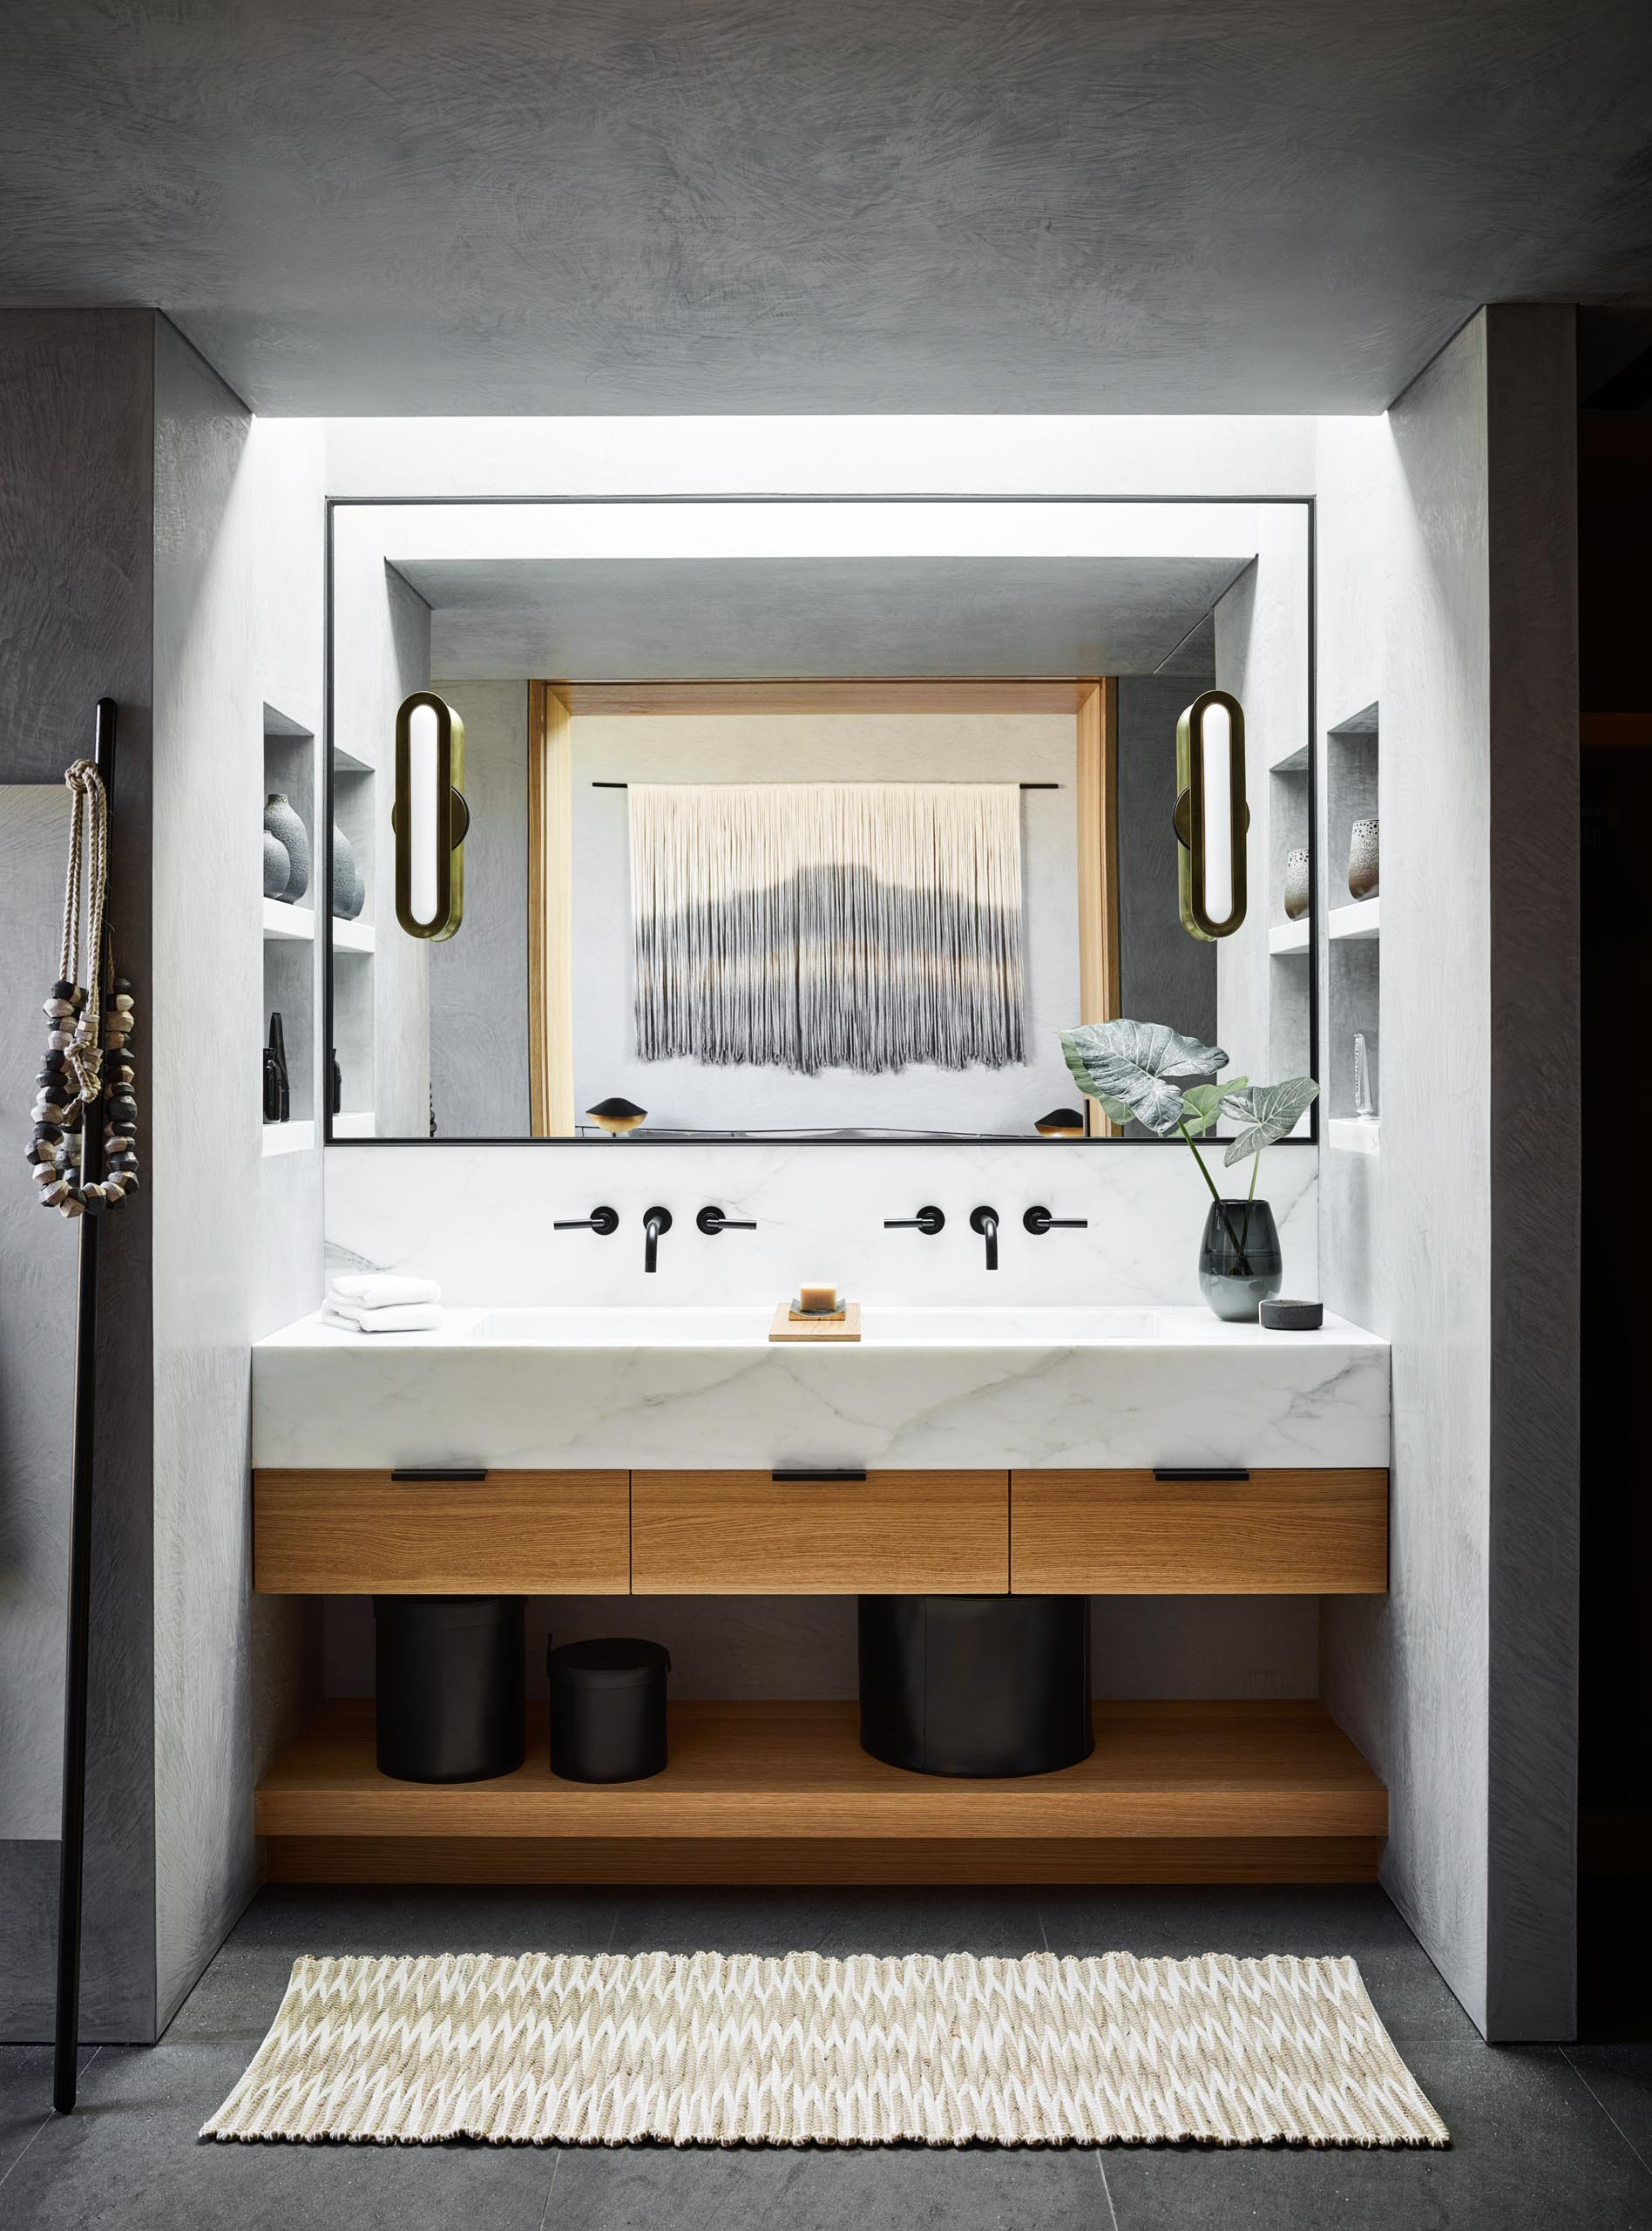 In this modern bathroom, a skylight shines down on the vanity, while shelving niches have been positioned on either side